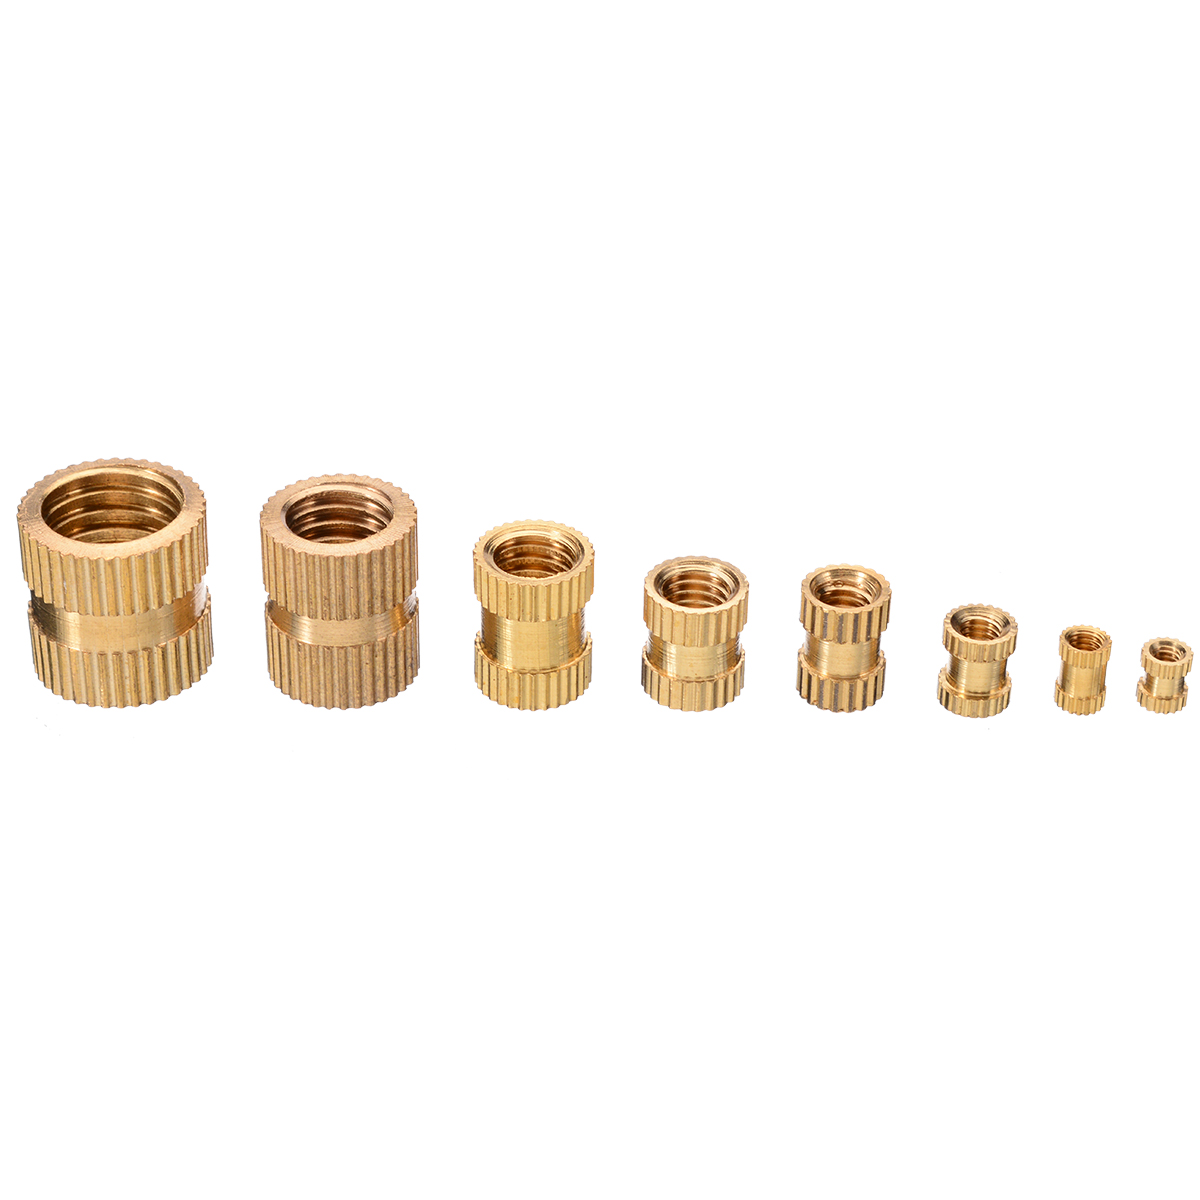 210Pcs//set Brass M2-M10 Assorted Cylinder Knurled Threaded Round Insert Embedded